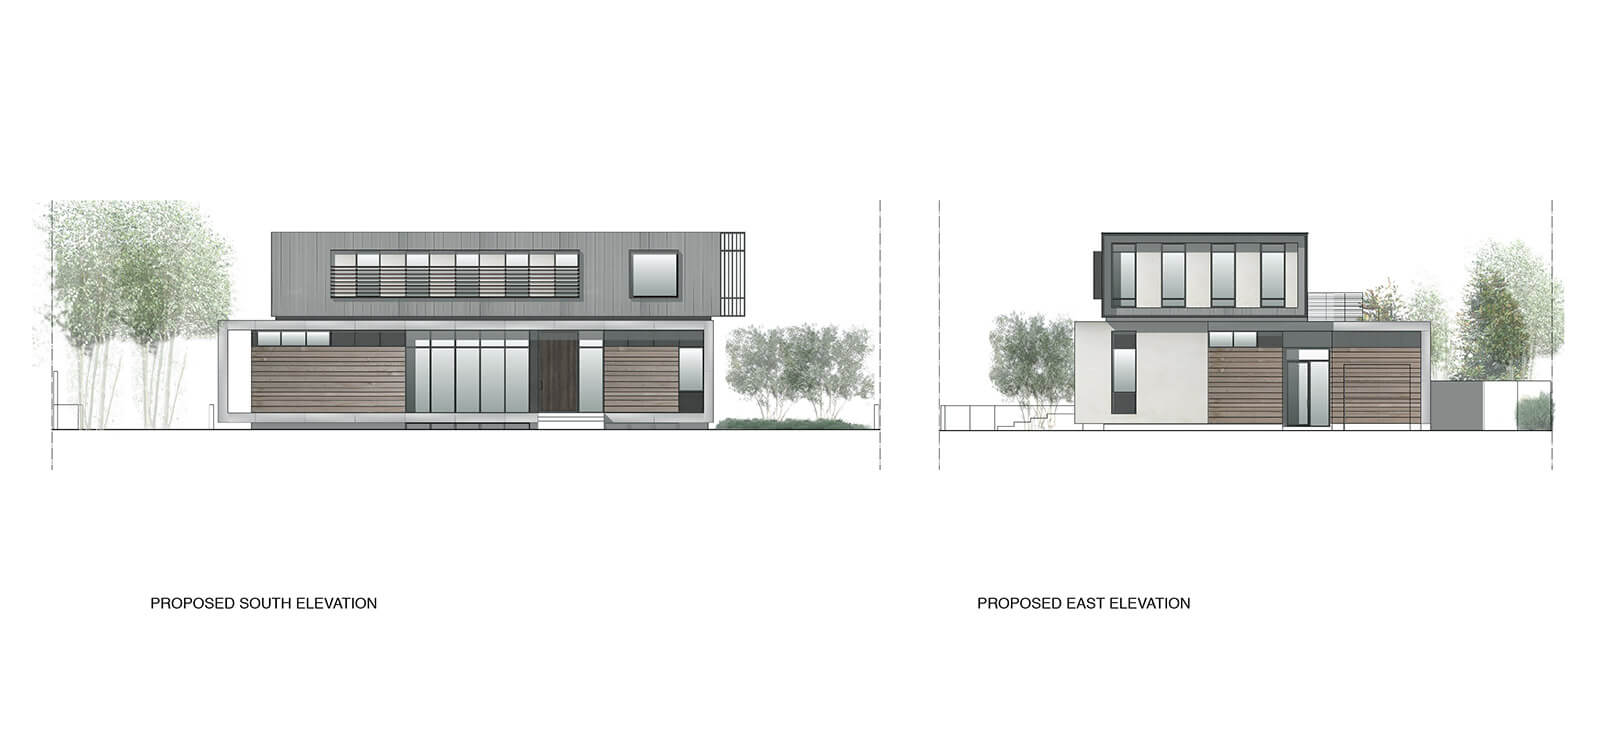 studio vara residential palo alto drawings elevation